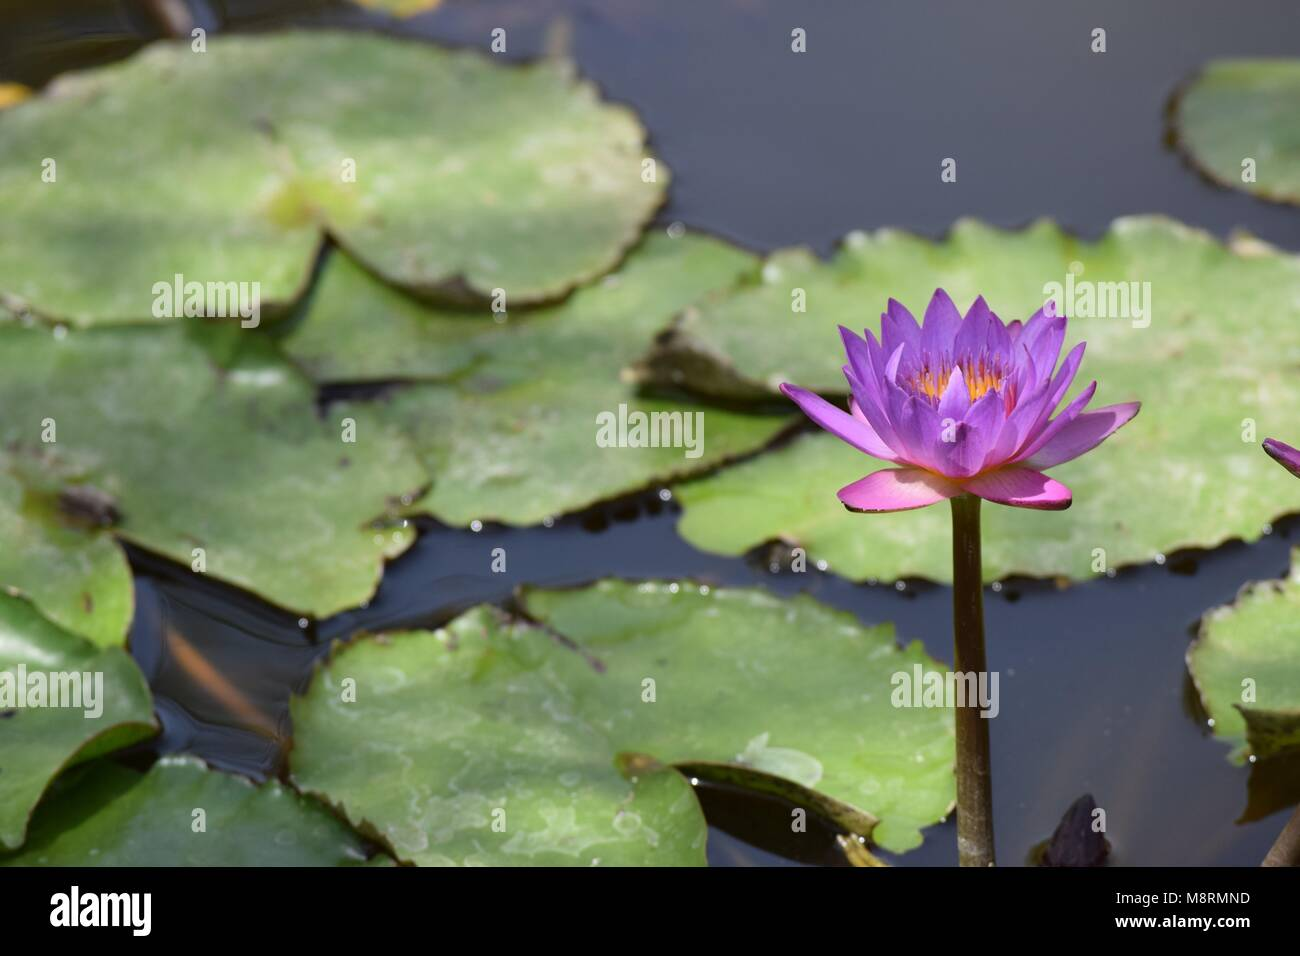 National flower of bangladesh stock photos national flower of nymphaea nouchalialso know as the star lotus or blue lotus is native izmirmasajfo